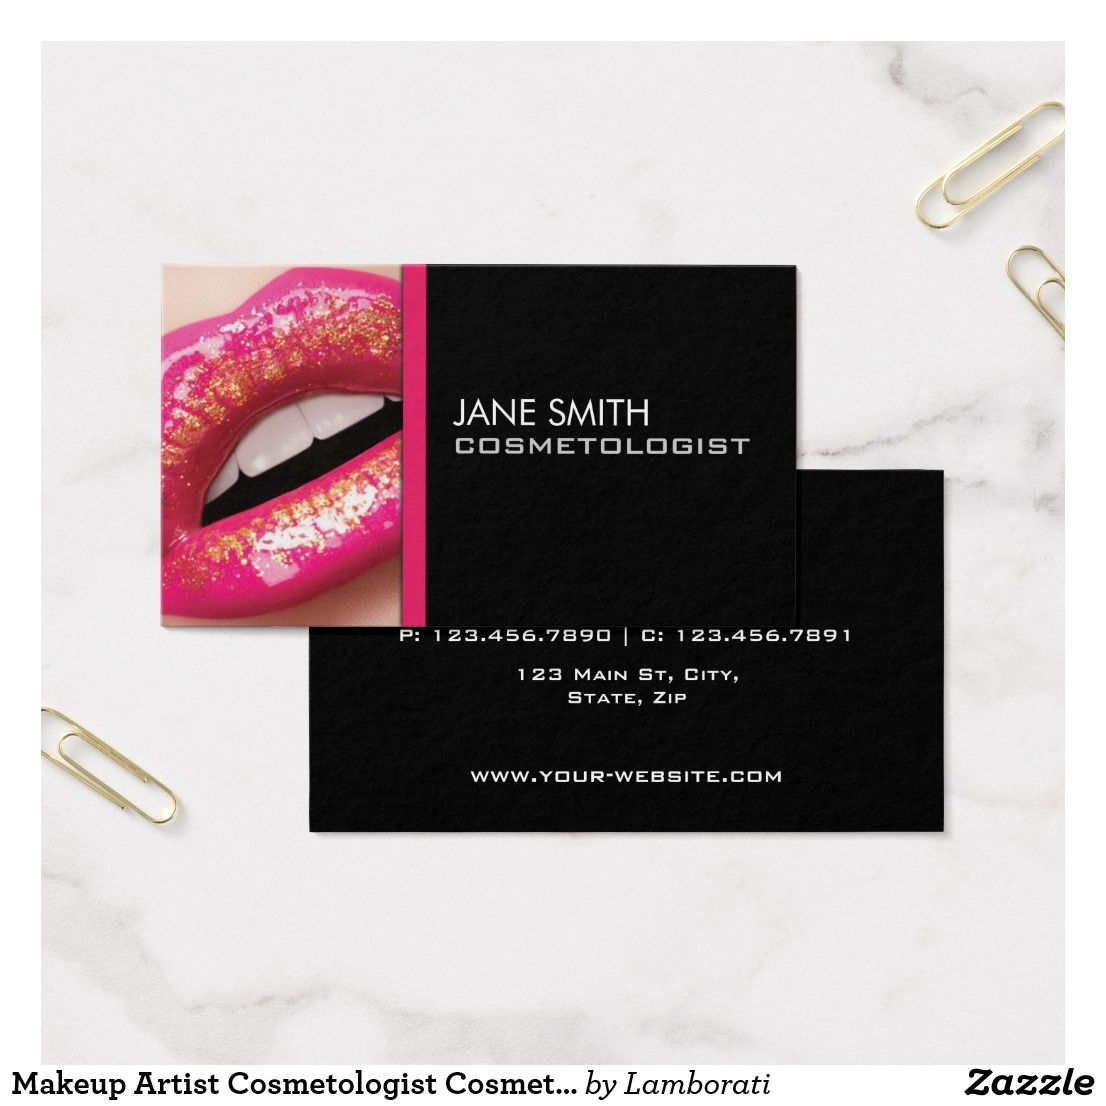 Makeup artist cosmetologist cosmetology groupon business card makeup artist cosmetologist cosmetology groupon business card colourmoves